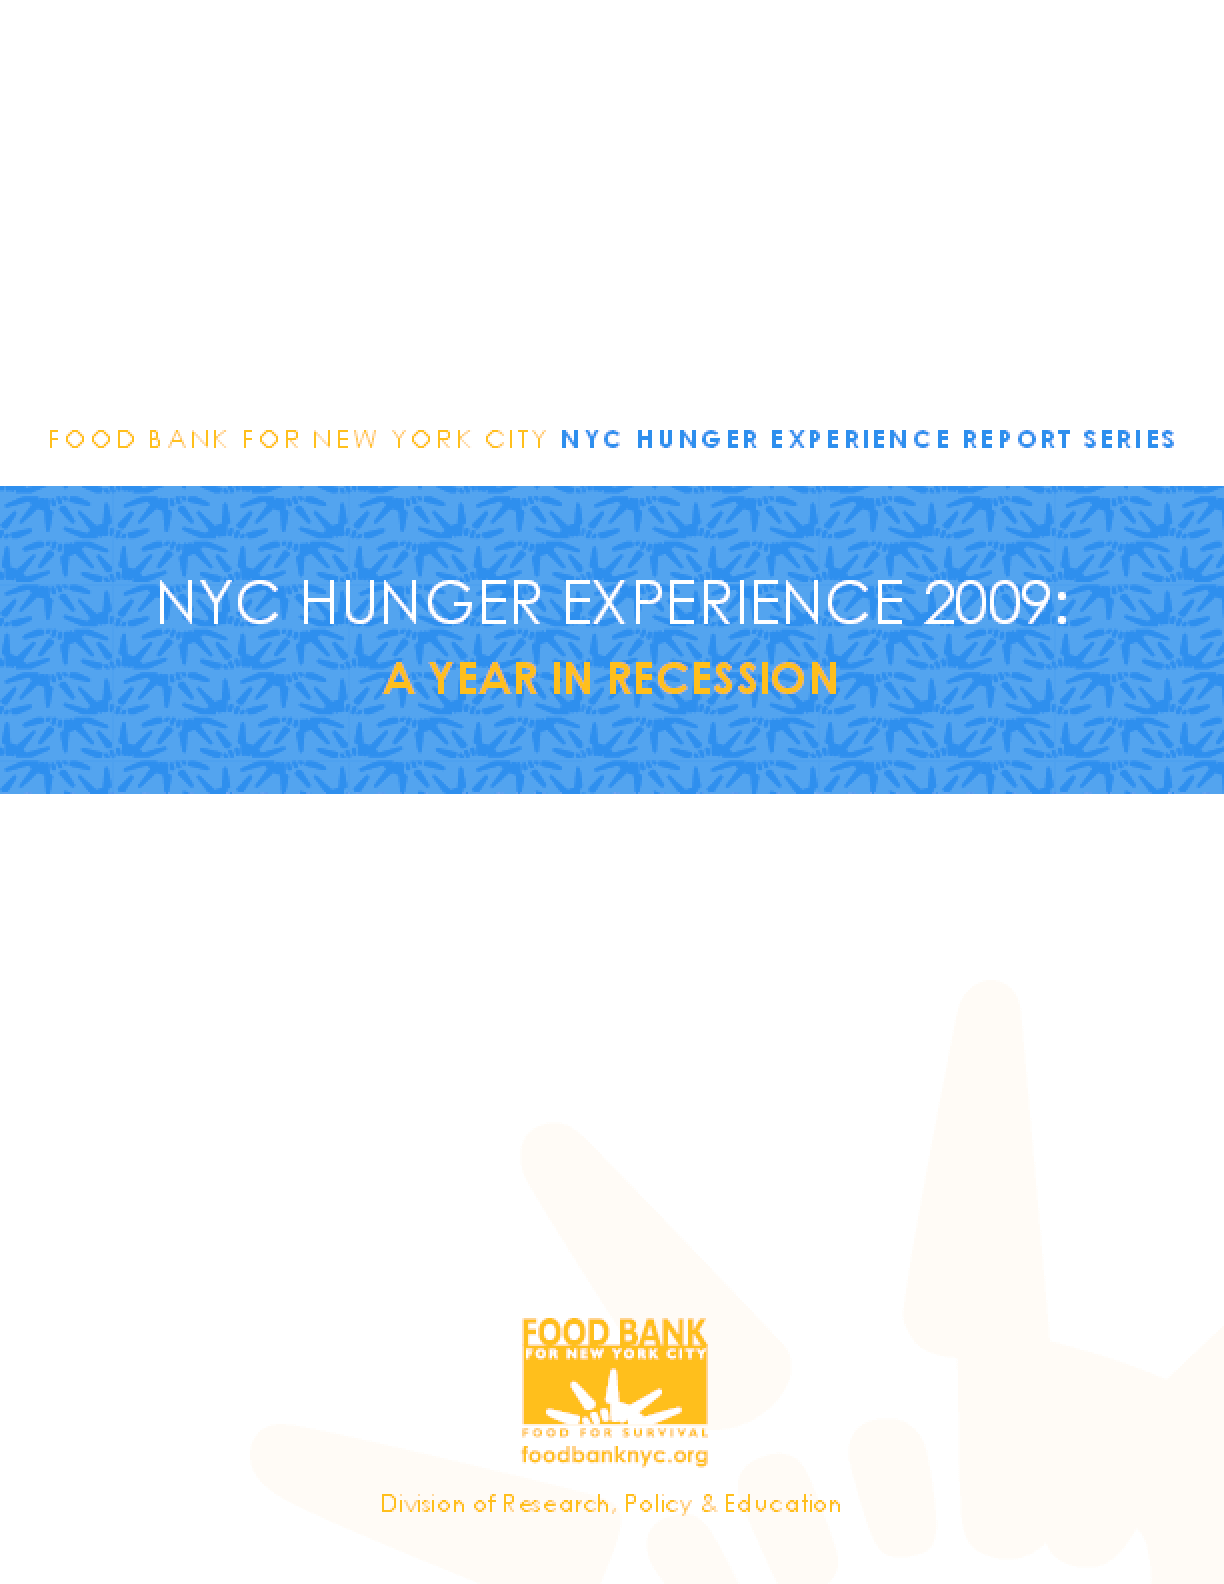 NYC Hunger Experience 2009: A Year in Recession